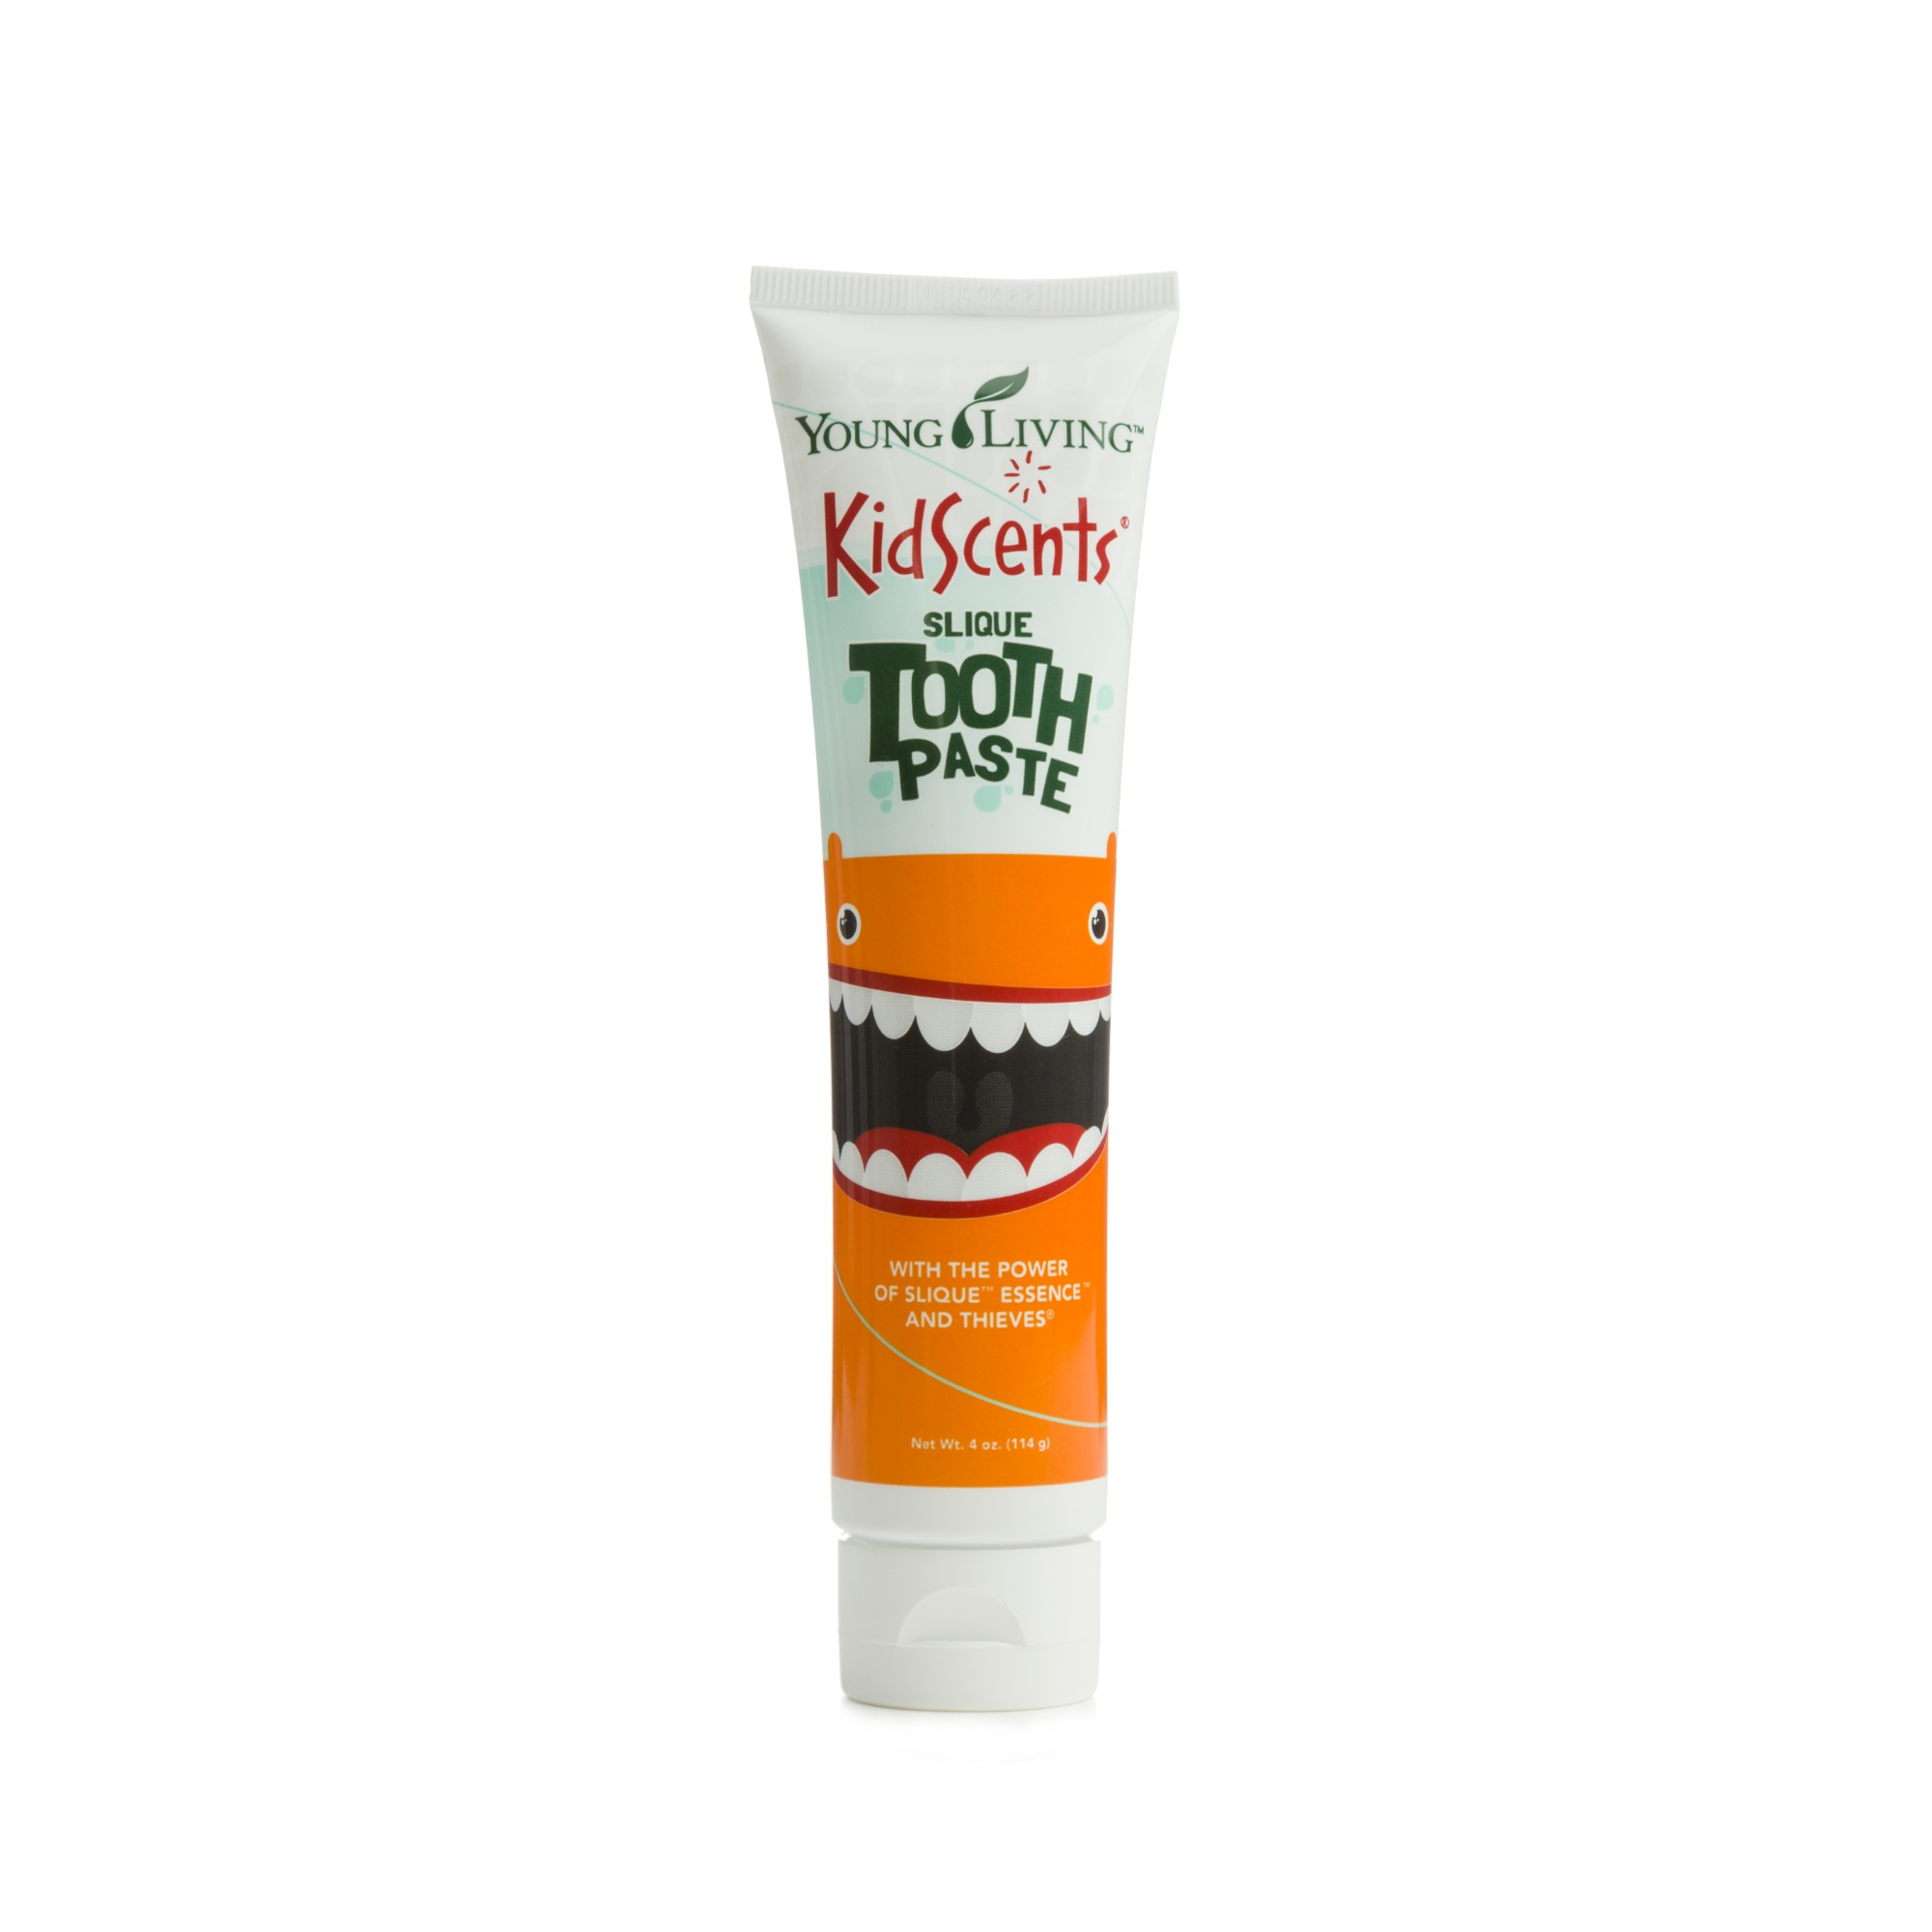 KIDSCENTS TOOTHPASTE    KidScents Slique Toothpaste uses Thieves and Slique Essence essential oil blends to gently clean and protect teeth. This safe and effective blend promotes healthy teeth without the use of fluoride, dyes, synthetic colors, artificial flavors, or preservatives. It has a great kid-friendly flavor, which is sure to make teeth-brushing time fun for your child!   Click here   to learn more about this product.